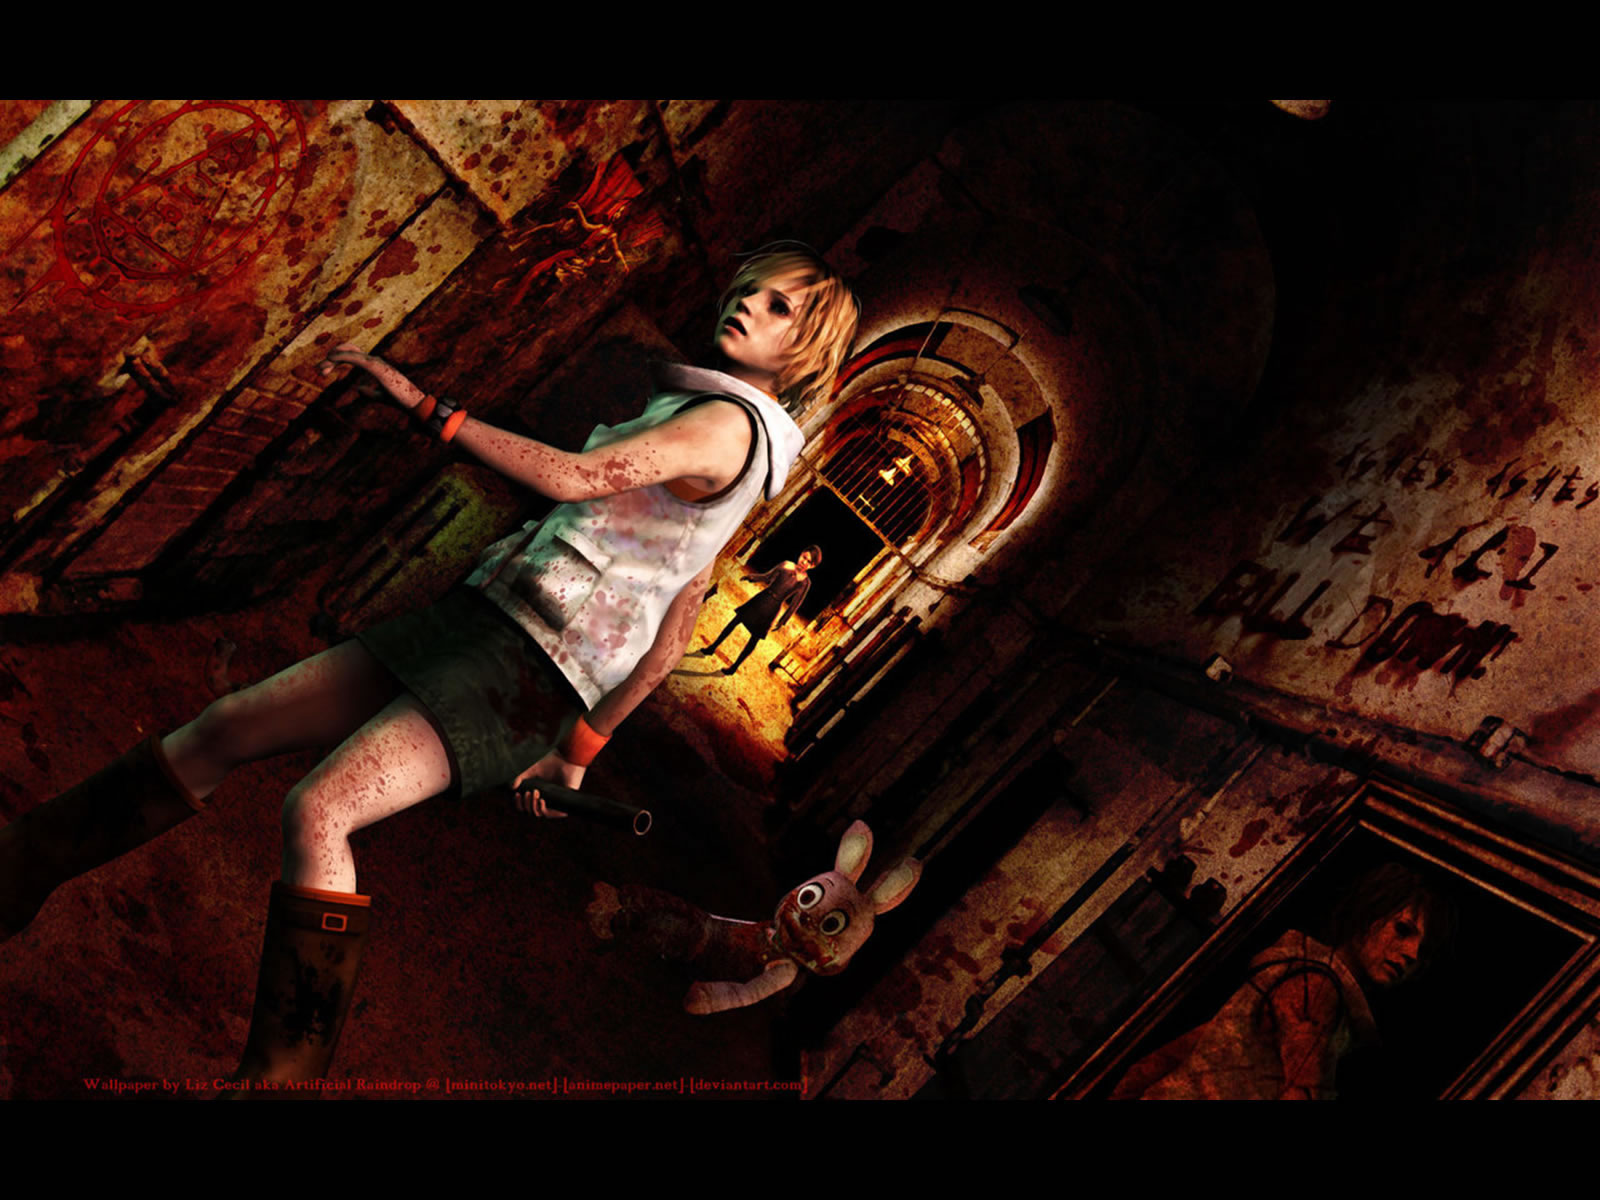 Analise: Silent Hill 3